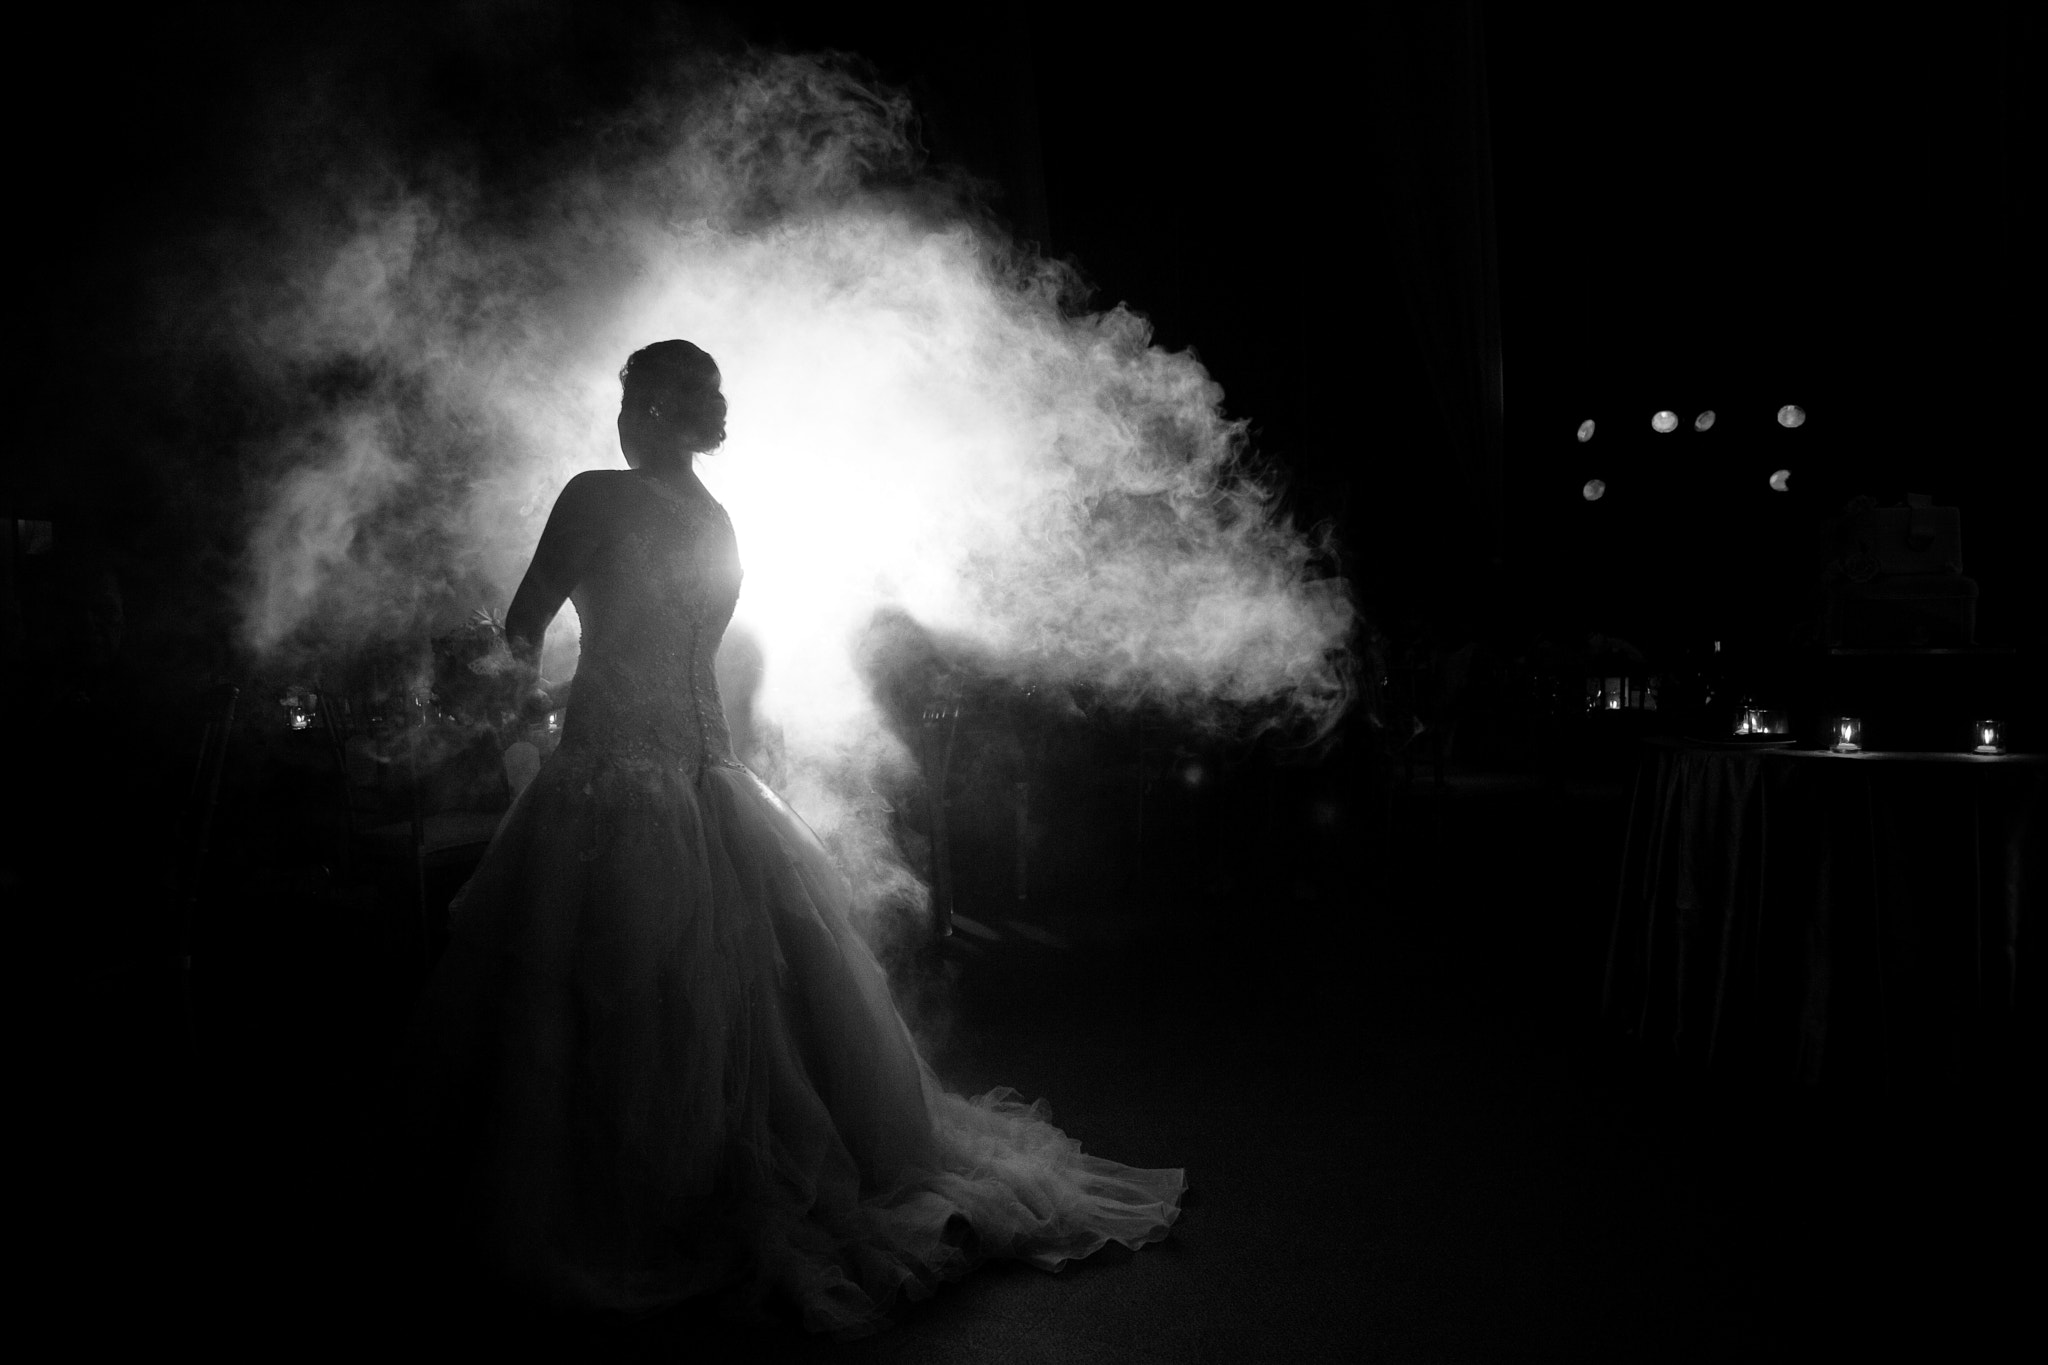 Photograph The First Dance (Mono) by Melv Pulayan on 500px